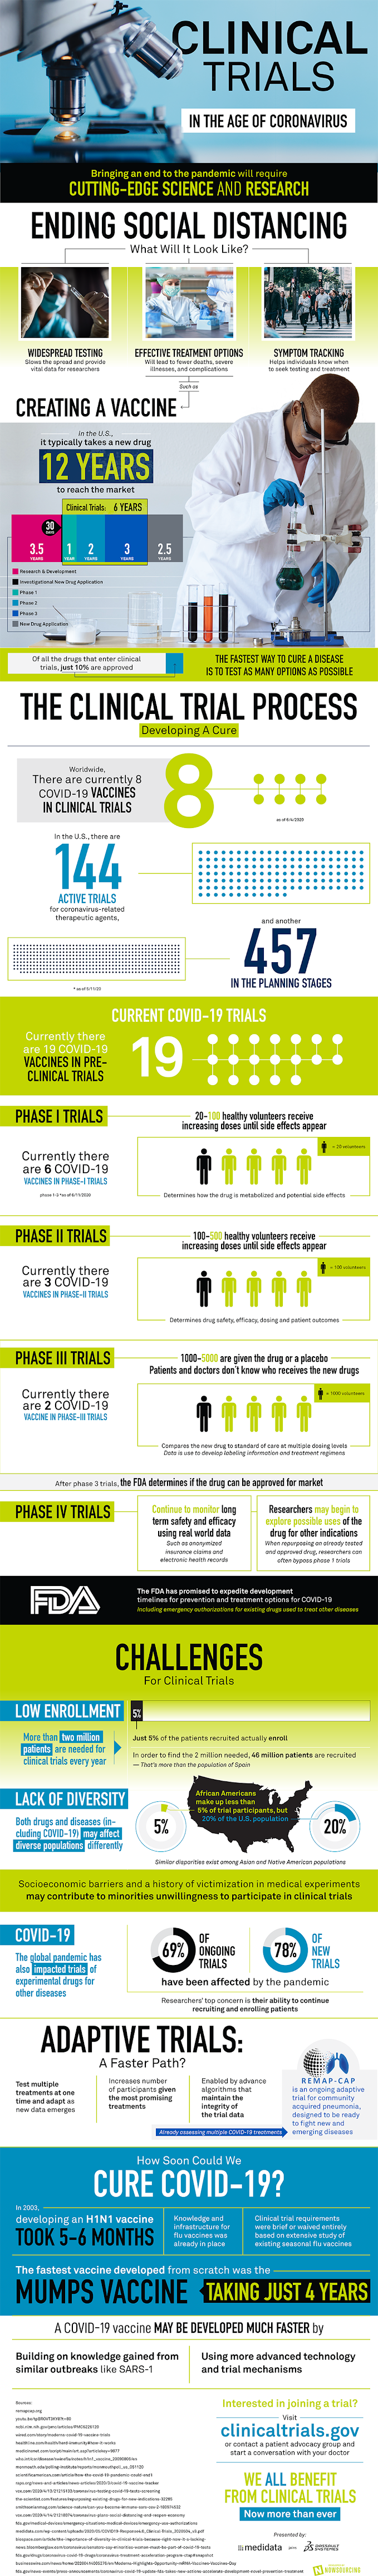 Clinical Trials In The Age Of Coronavirus #infographic